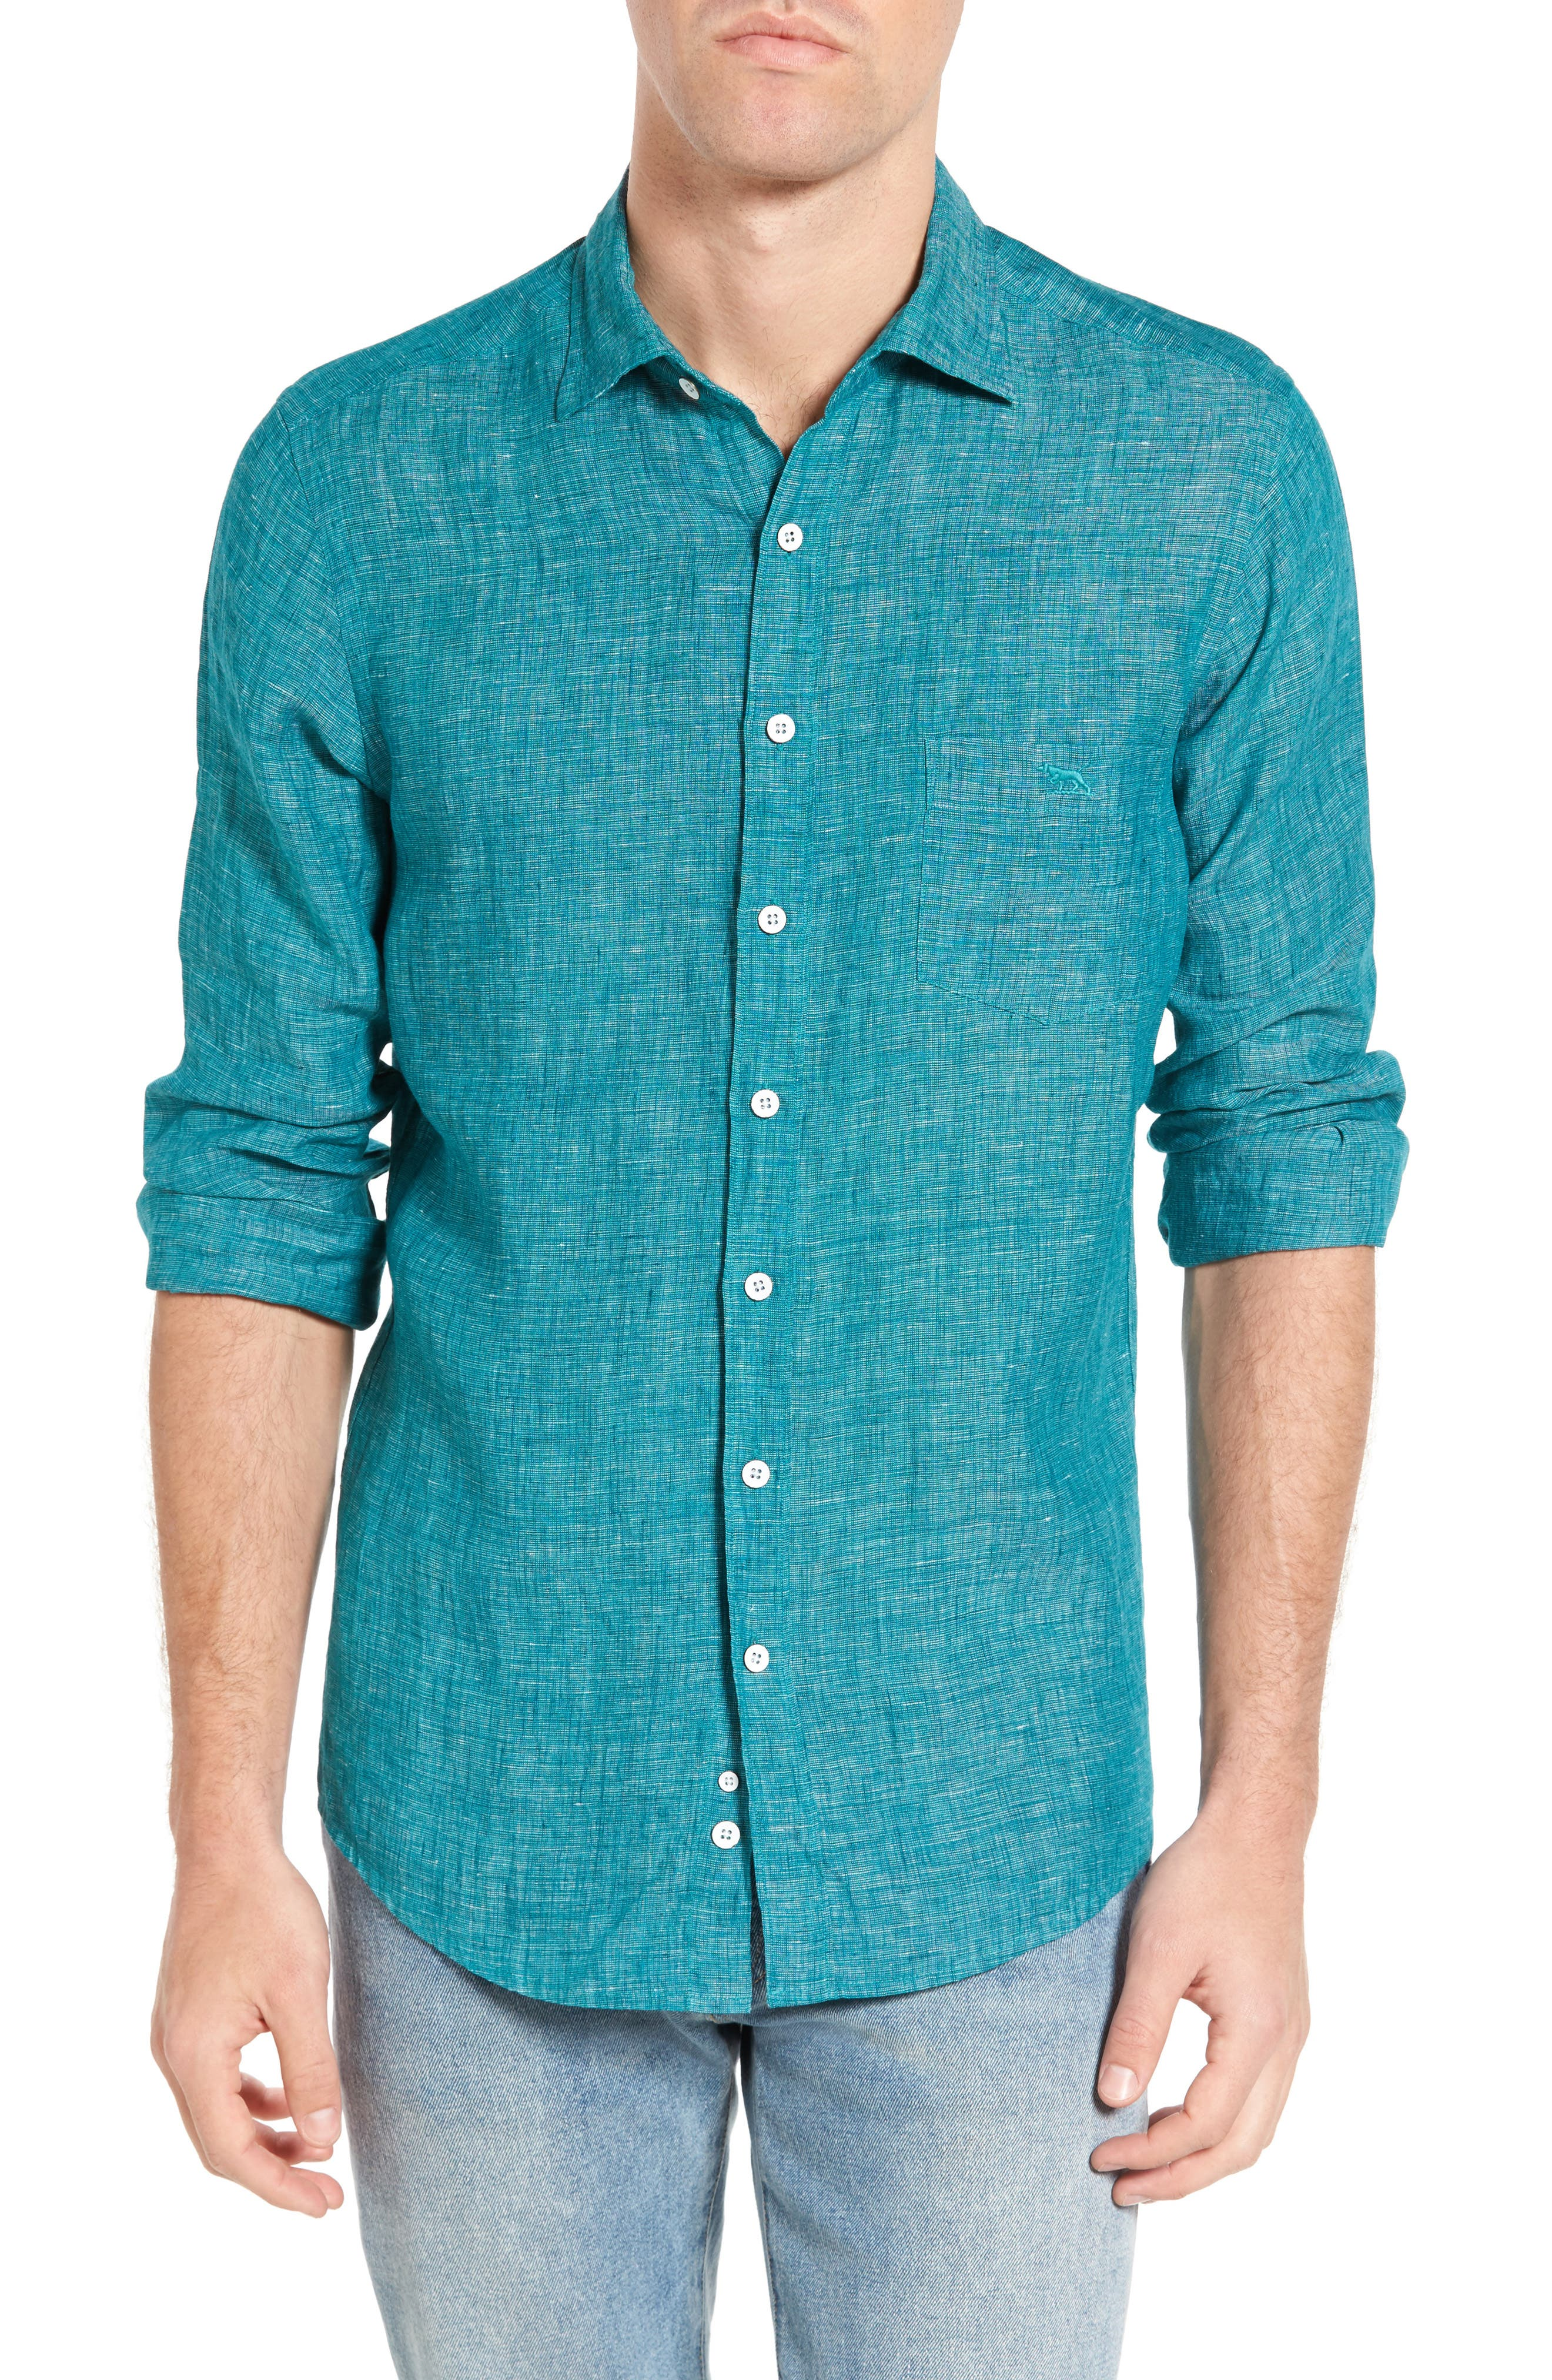 Norsewood Sports Fit Linen Sport Shirt,                         Main,                         color, 342